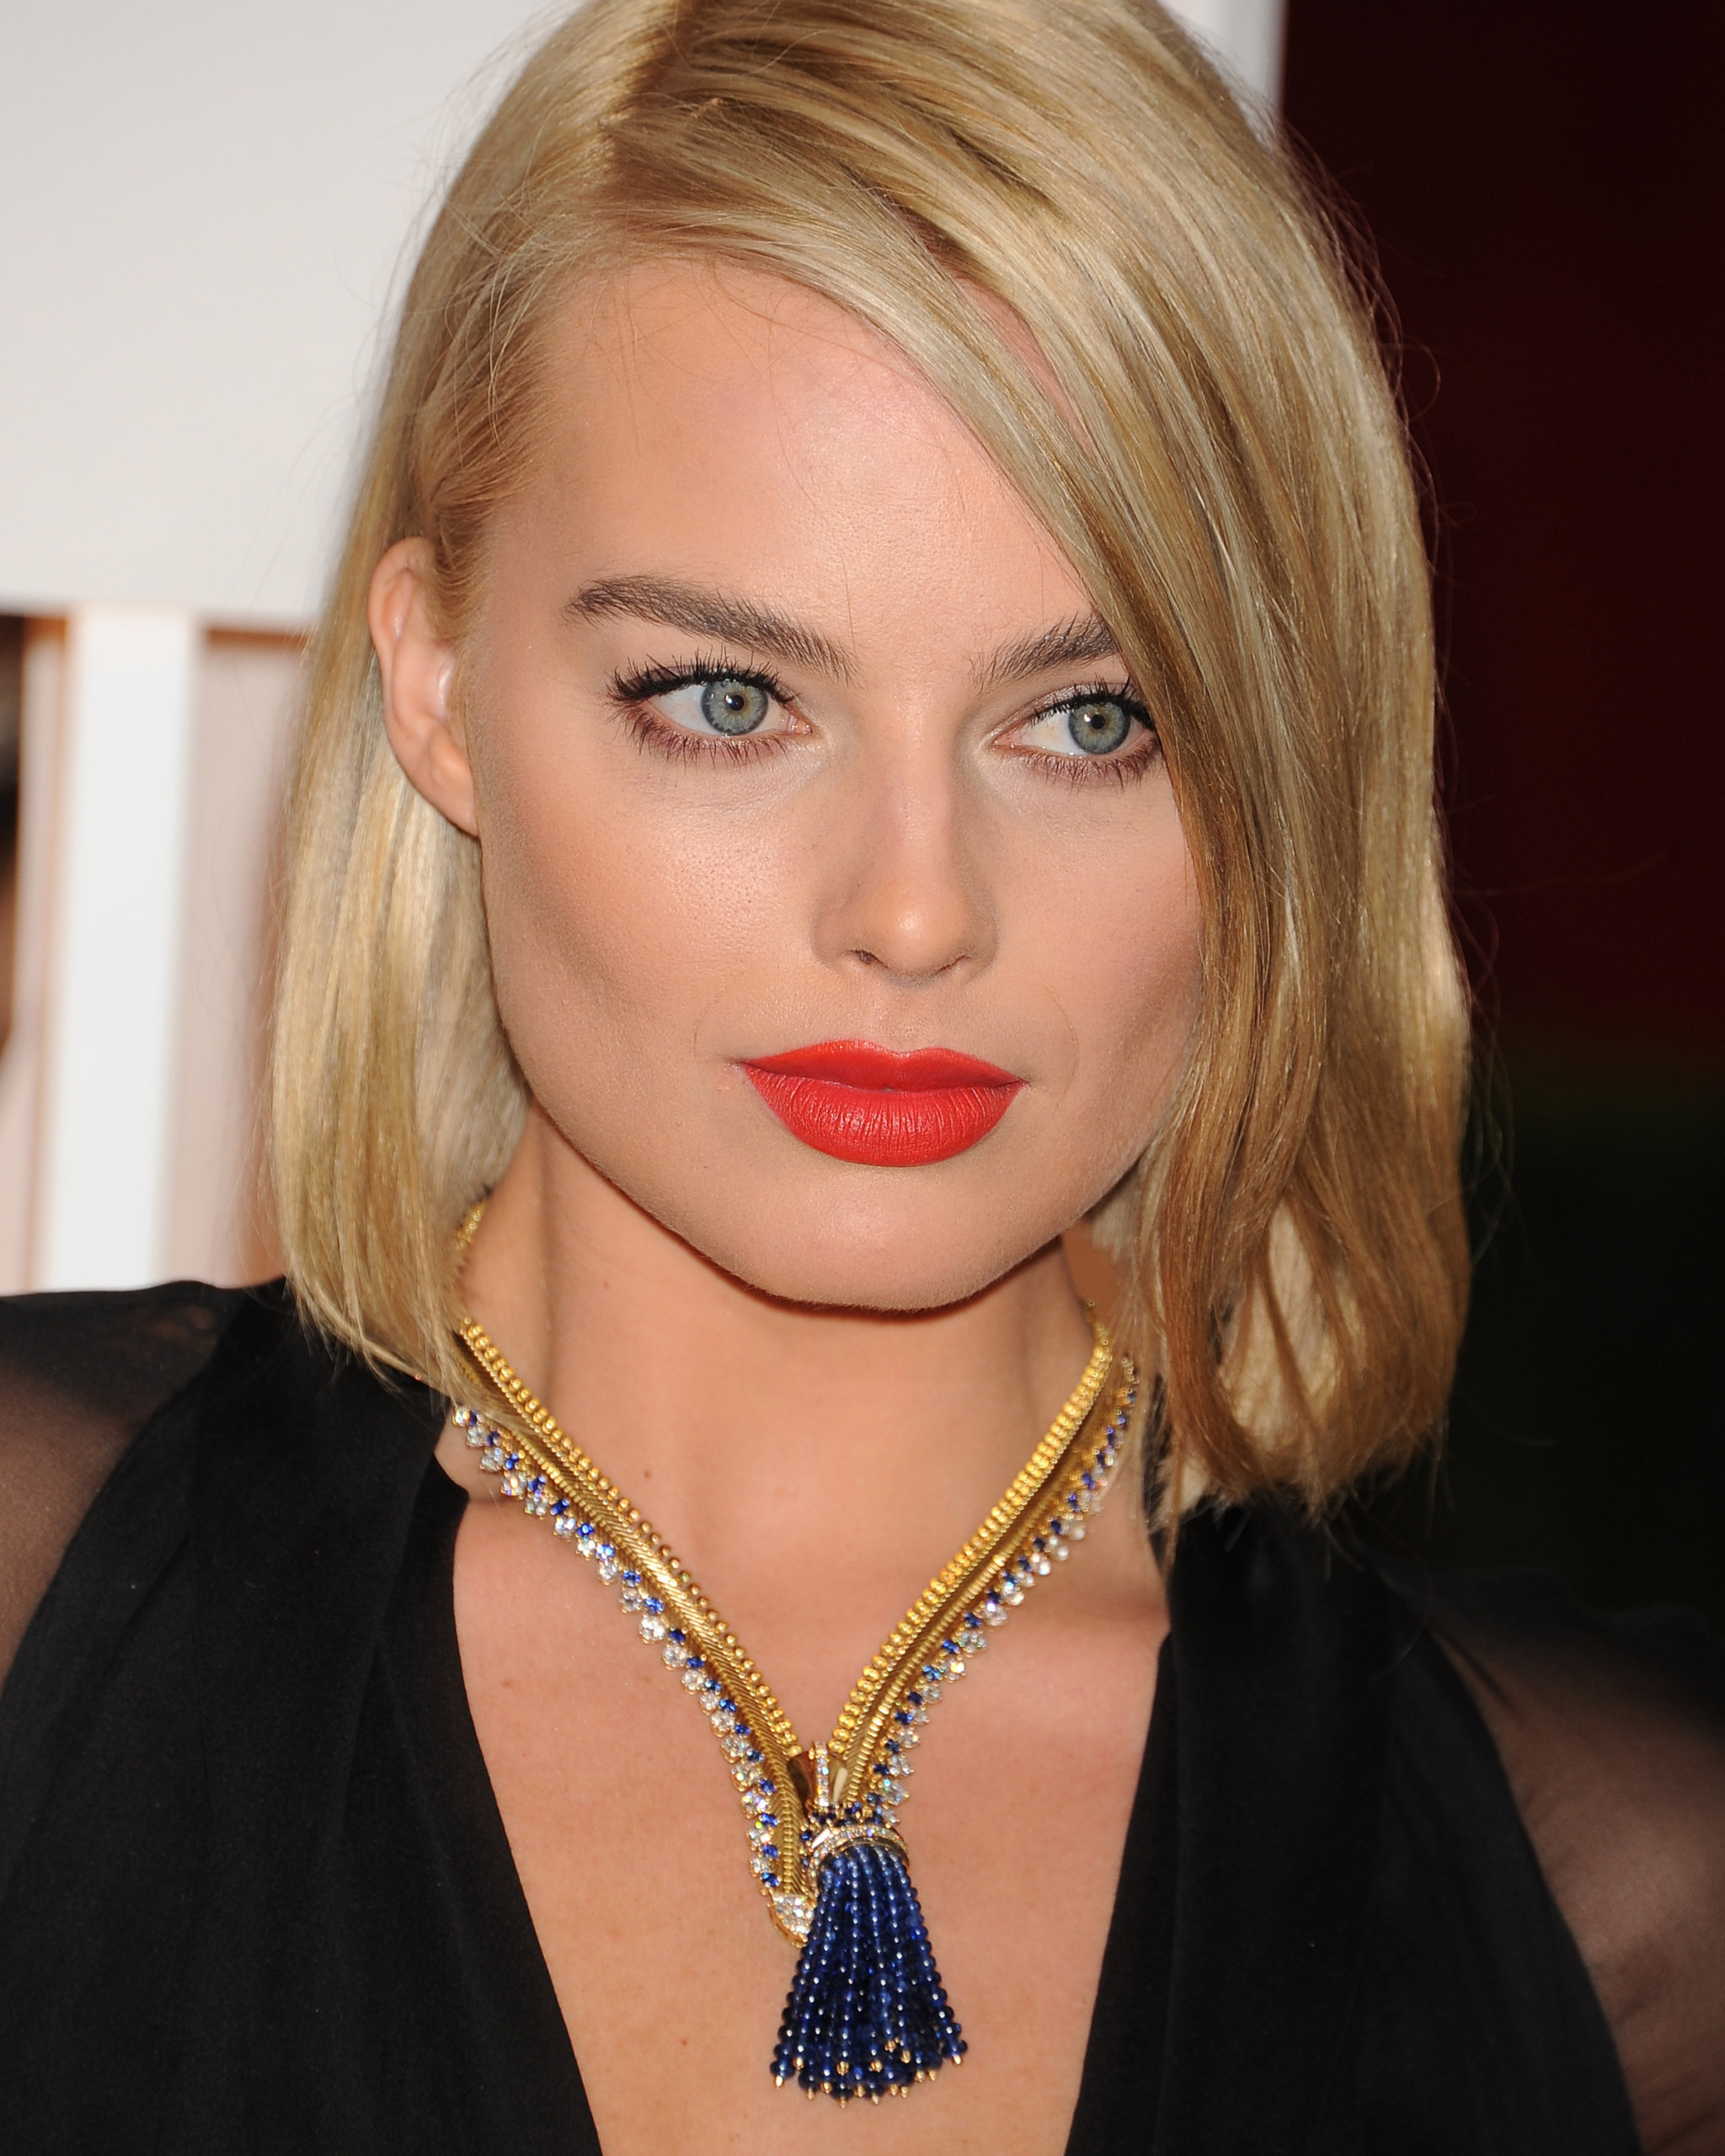 Margot Robbie wearing a zip diamond necklace with round cut diamonds and blue sapphires in gold at the 2015 Academy Awards